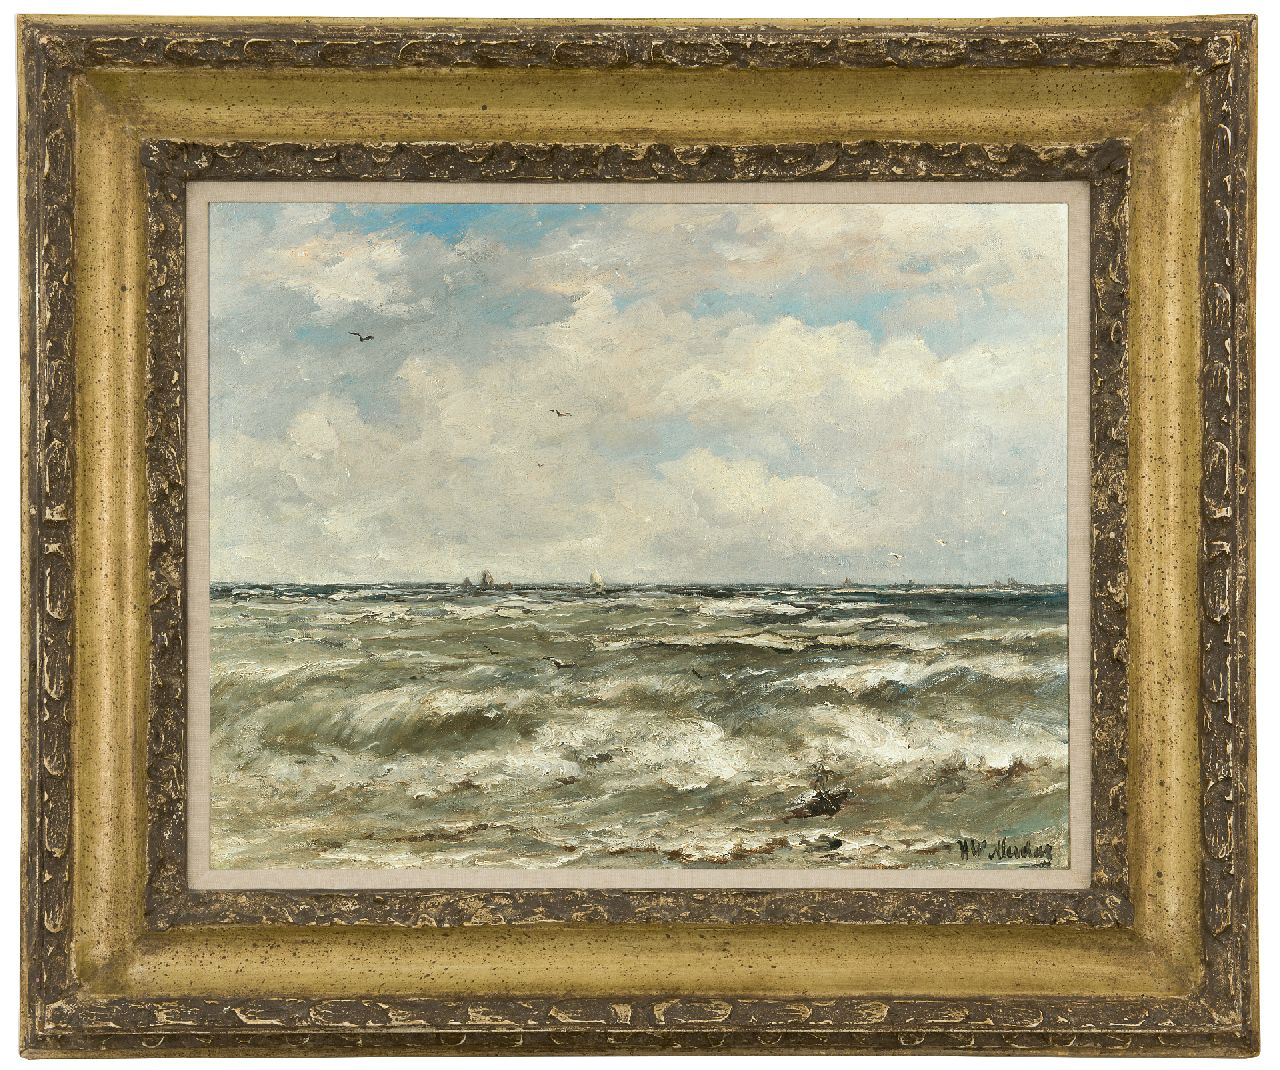 Mesdag H.W.  | Hendrik Willem Mesdag | Paintings offered for sale | At sea, oil on canvas 40.2 x 51.3 cm, signed l.r.